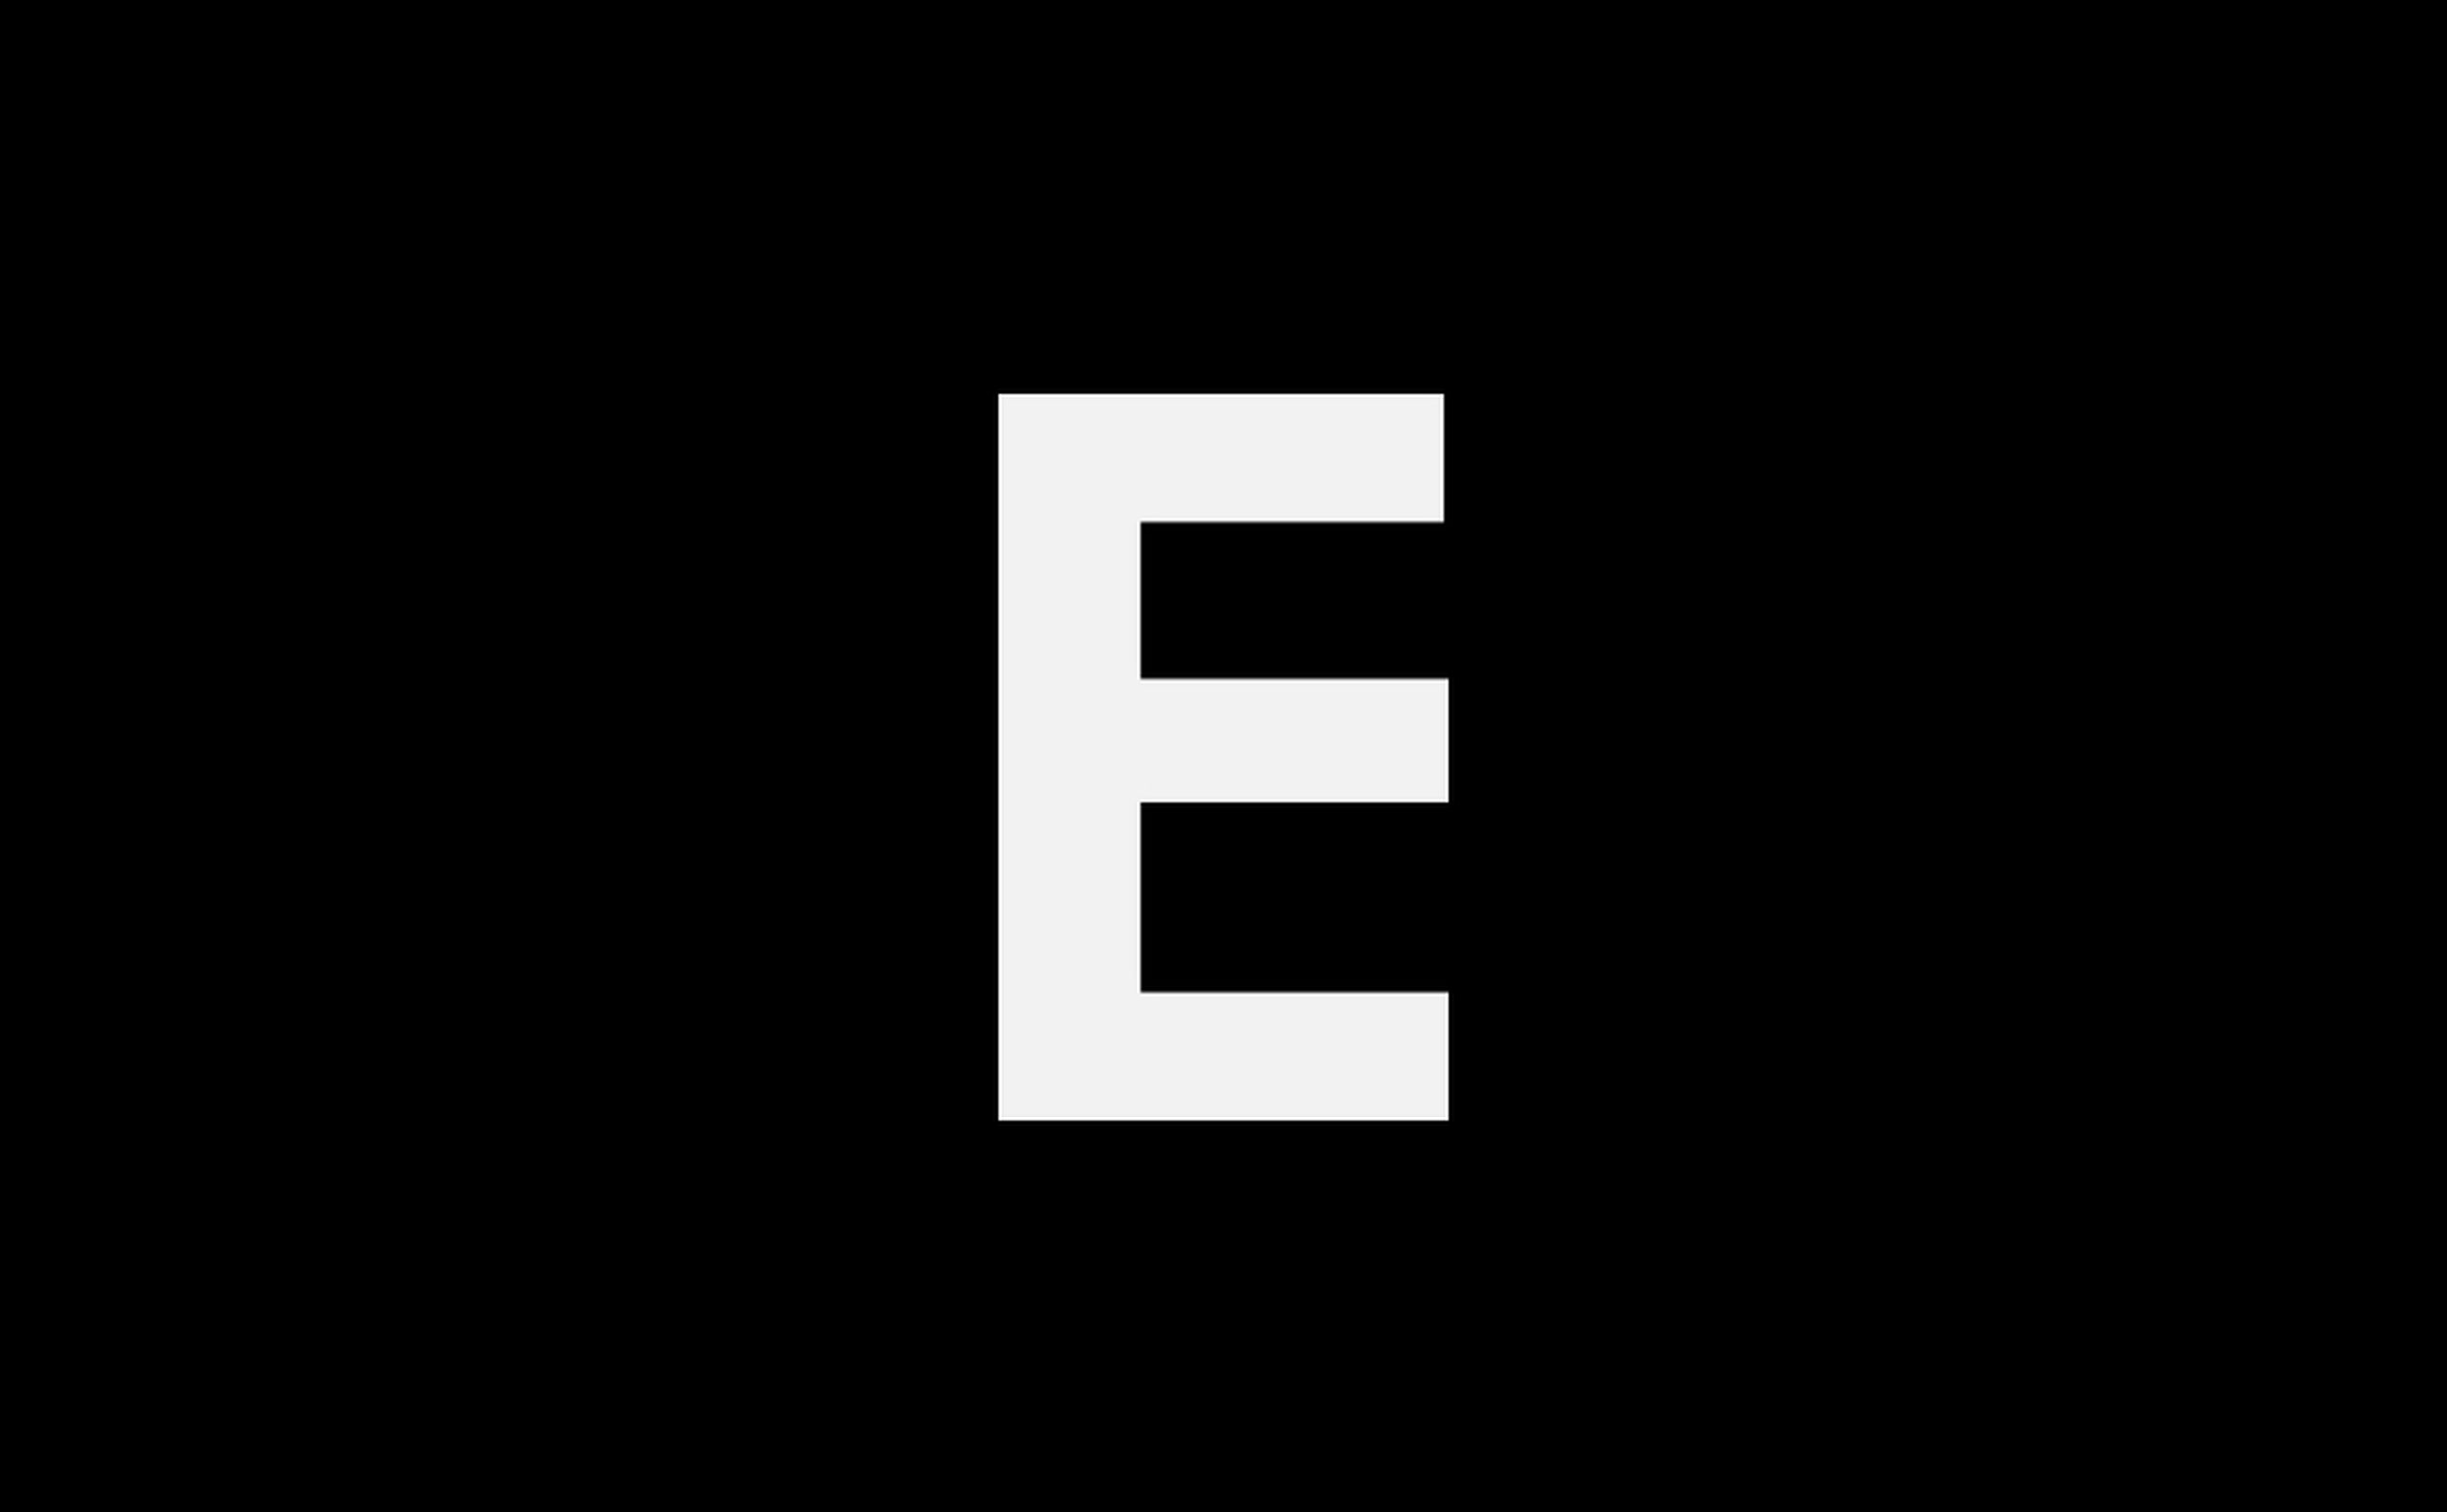 VIEW OF KOI FISH IN WATER